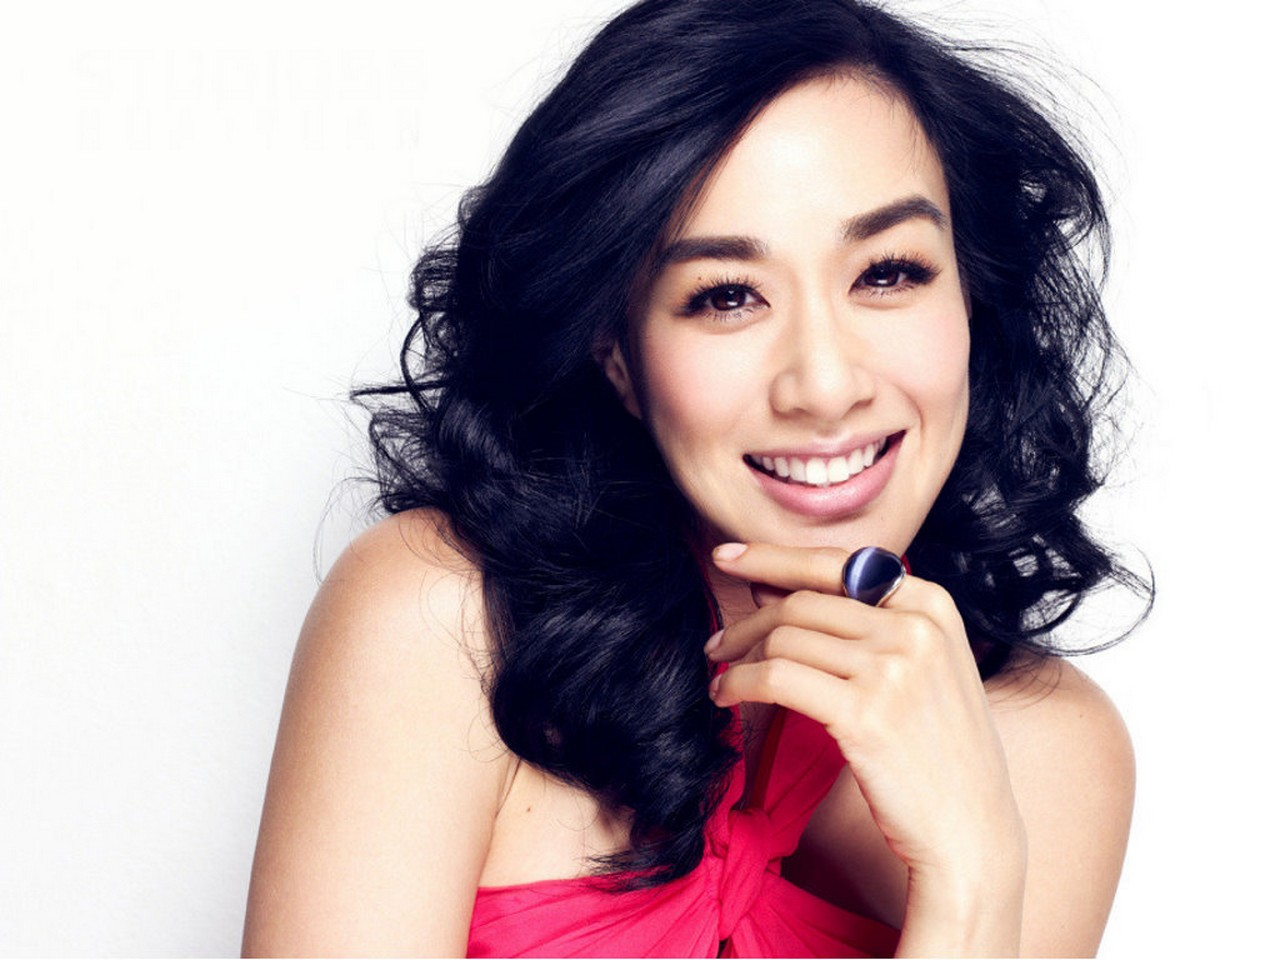 Christy Chung naked (96 photo), Topless, Cleavage, Instagram, butt 2018